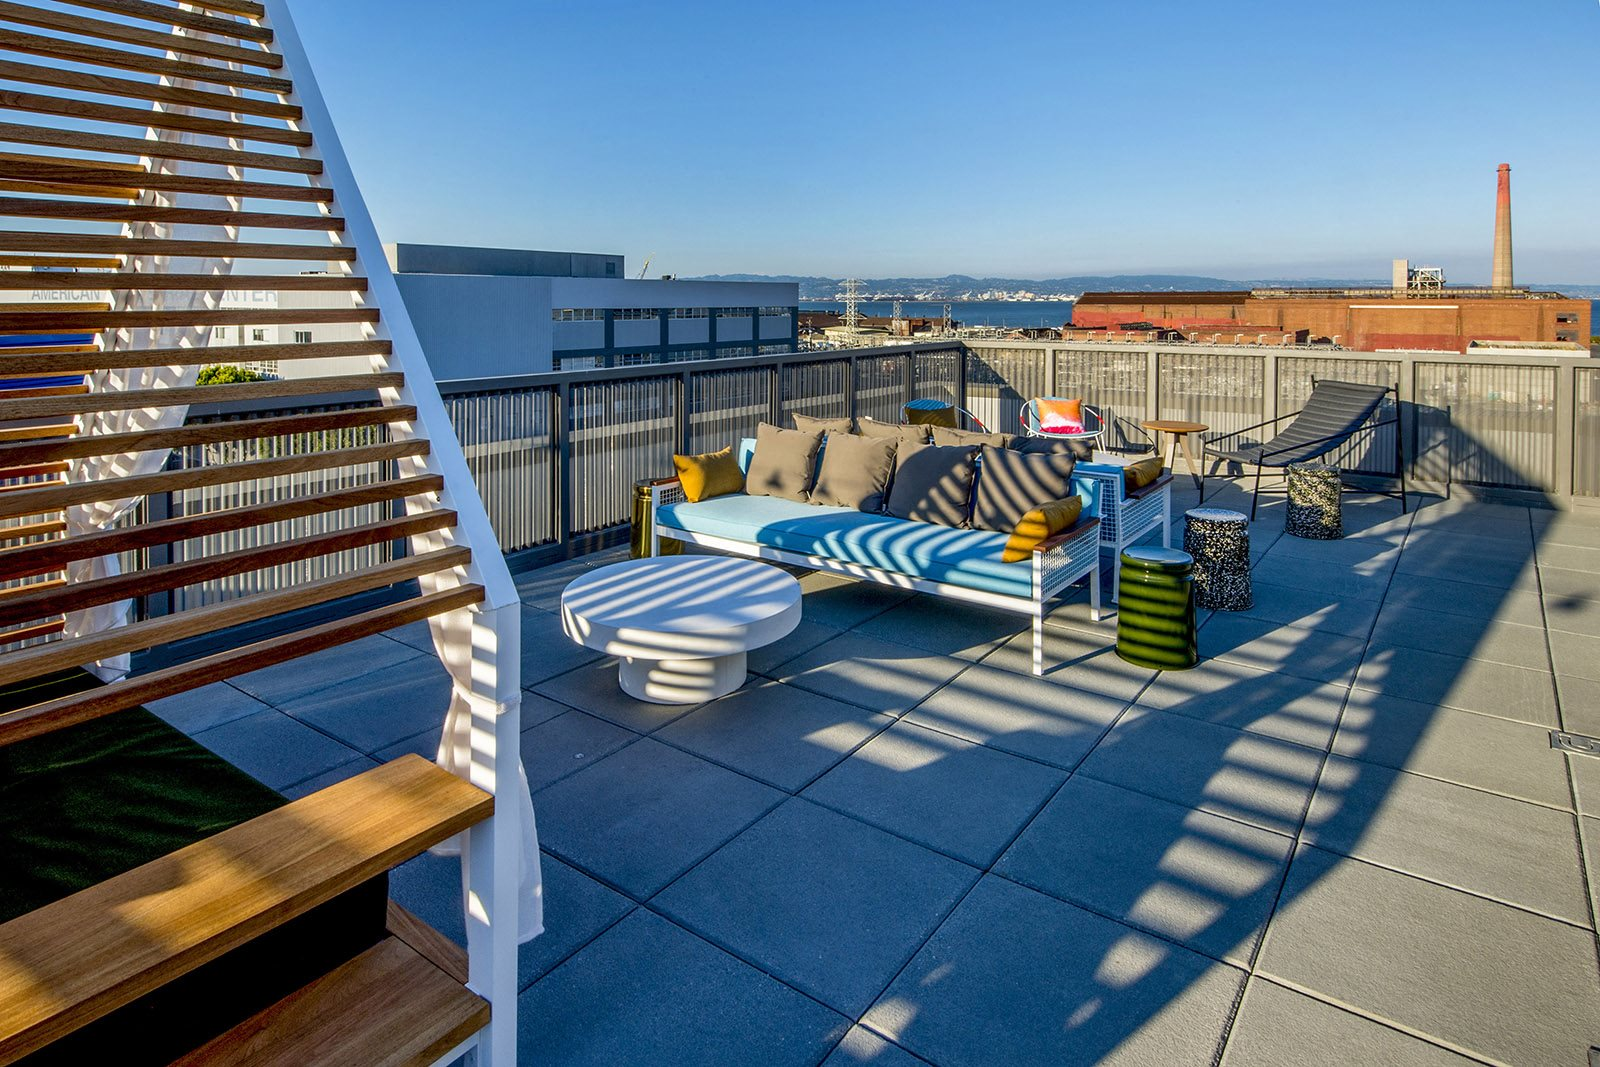 Amenities-Cabanas, Lounging and Dining Spaces and Barbecue Grill